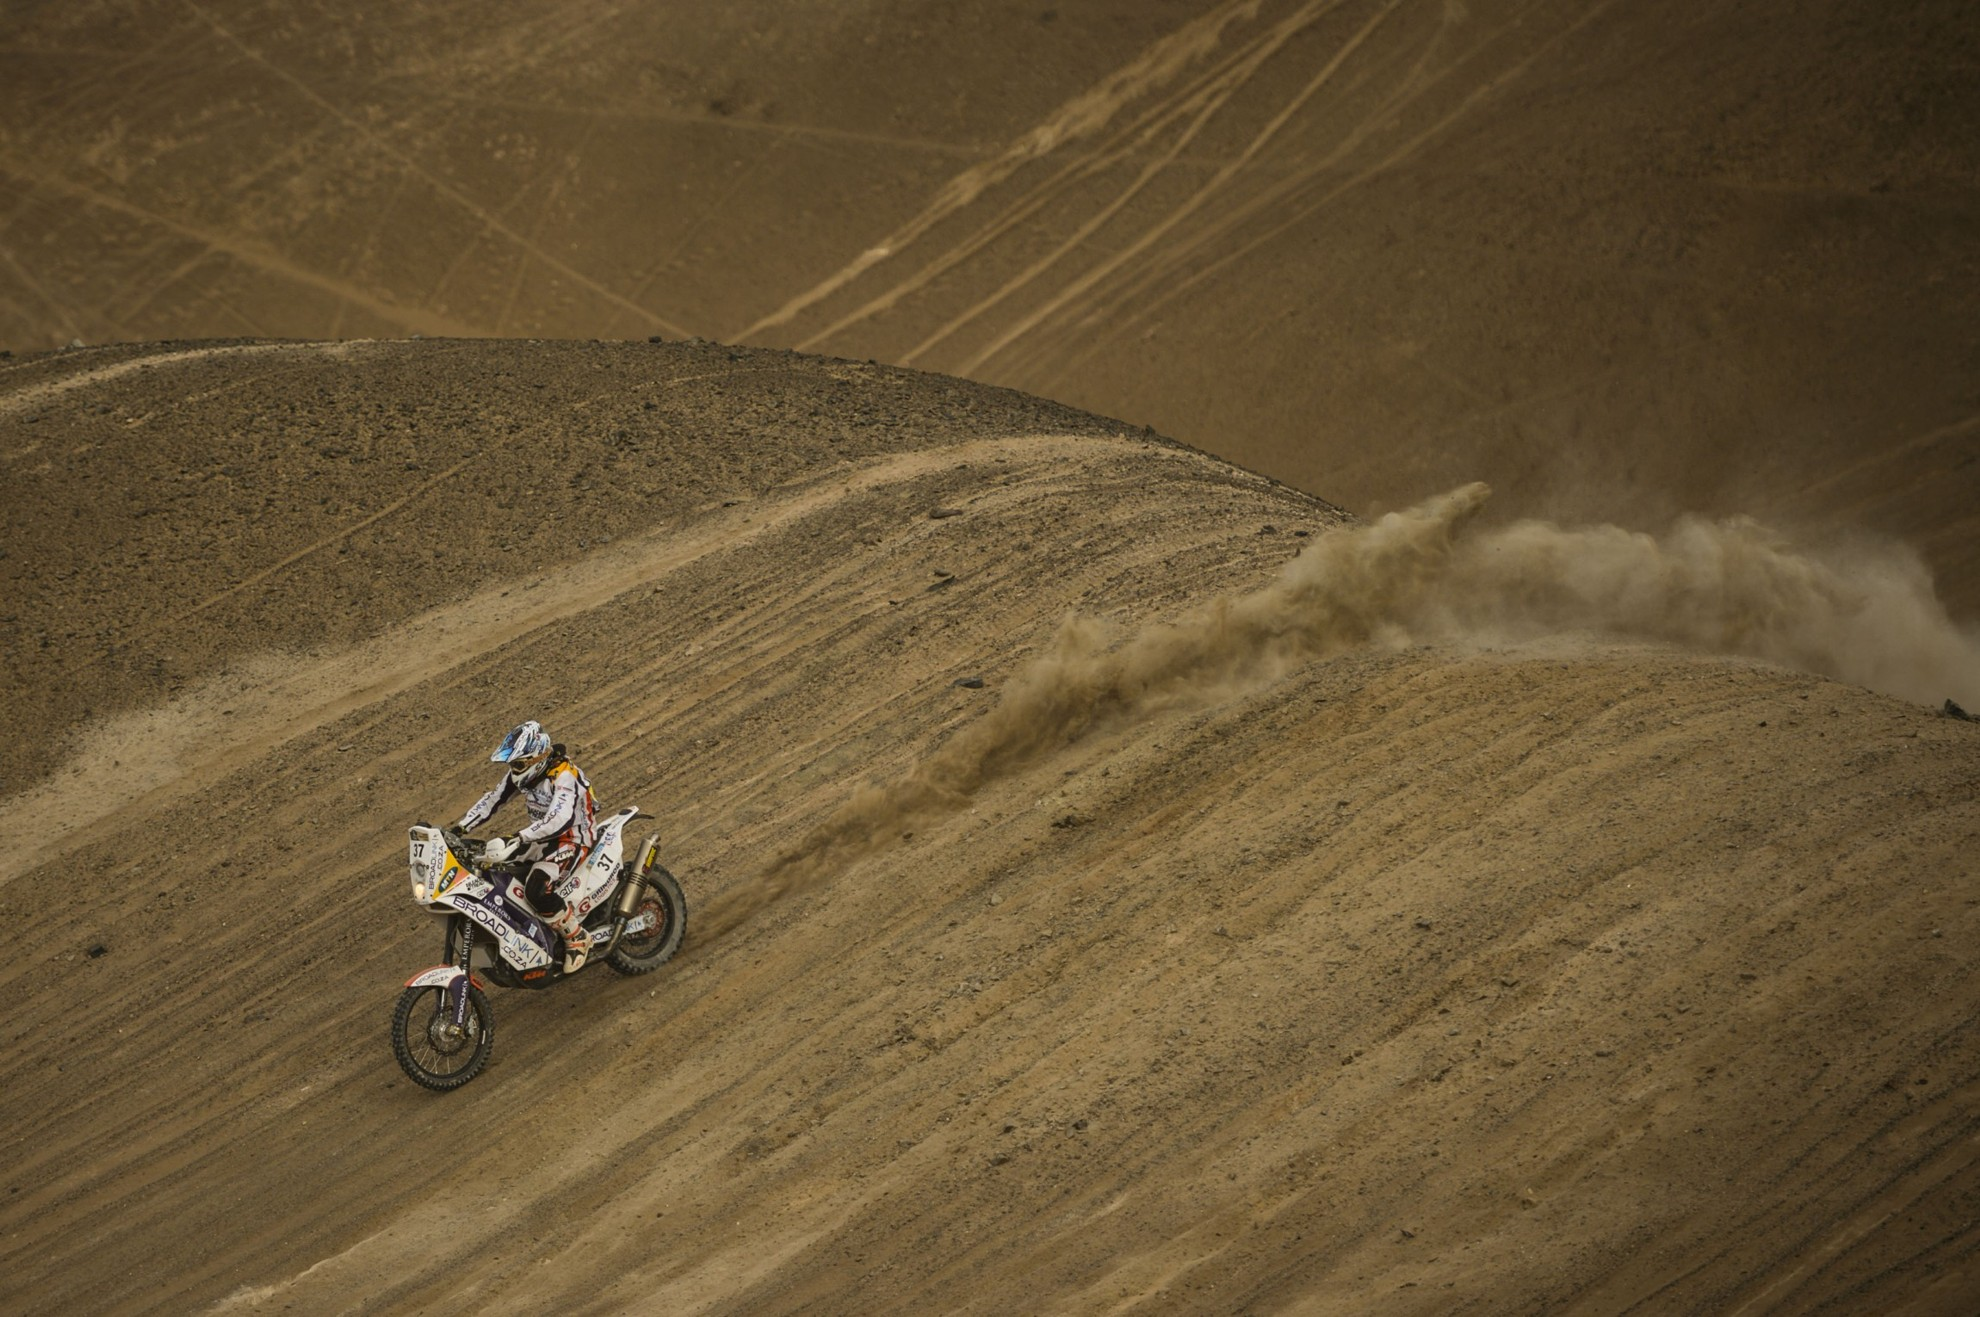 Dakar Rally News